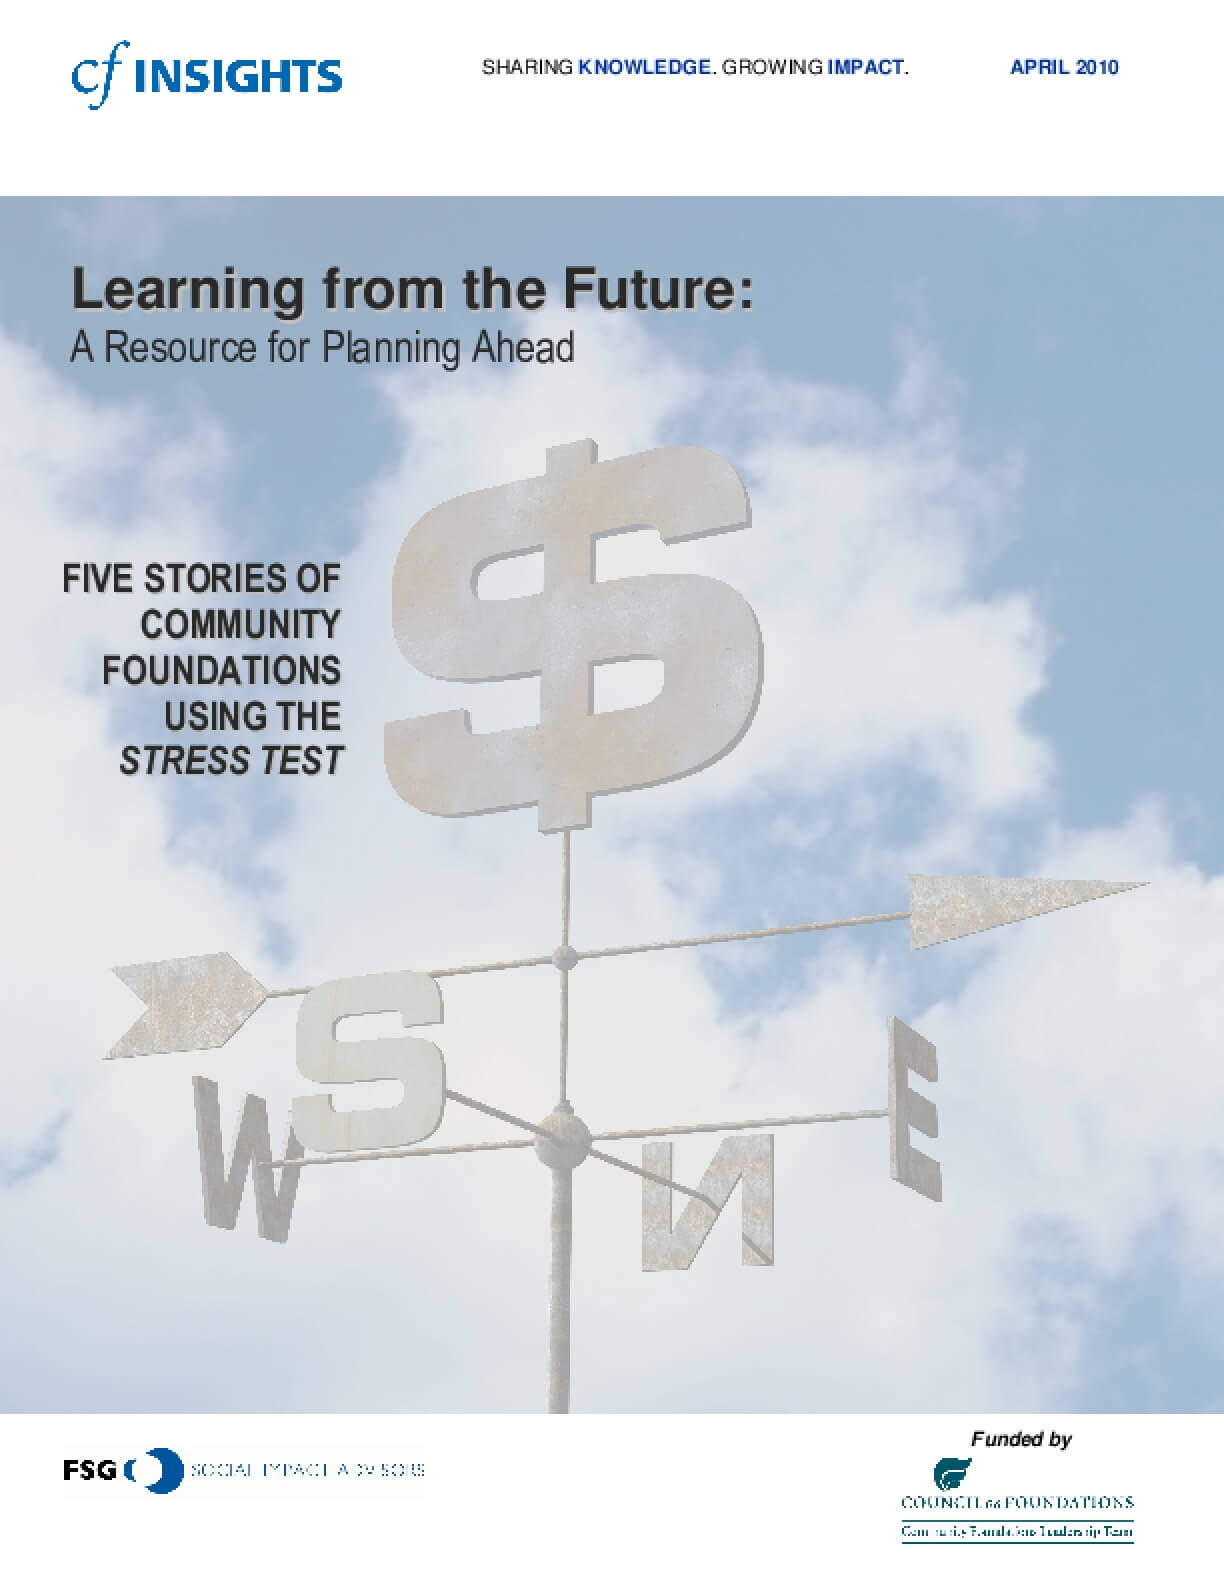 Learning from the Future: A Resource for Planning Ahead – Five Stories of Community Foundations Using the Stress Test